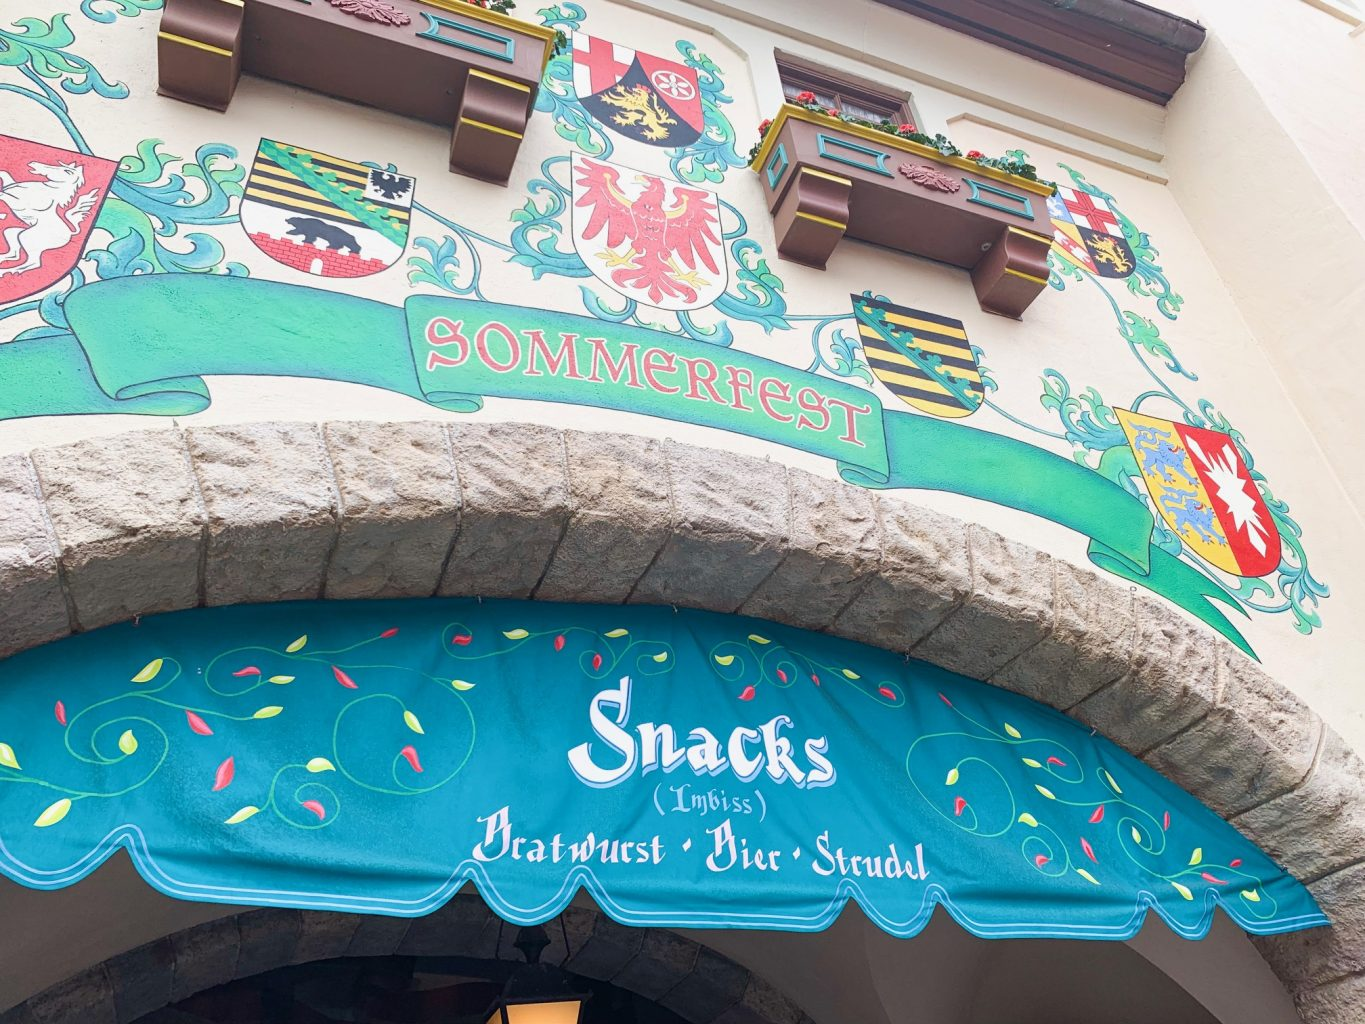 Sommerfest in Epcot offers some of the best food